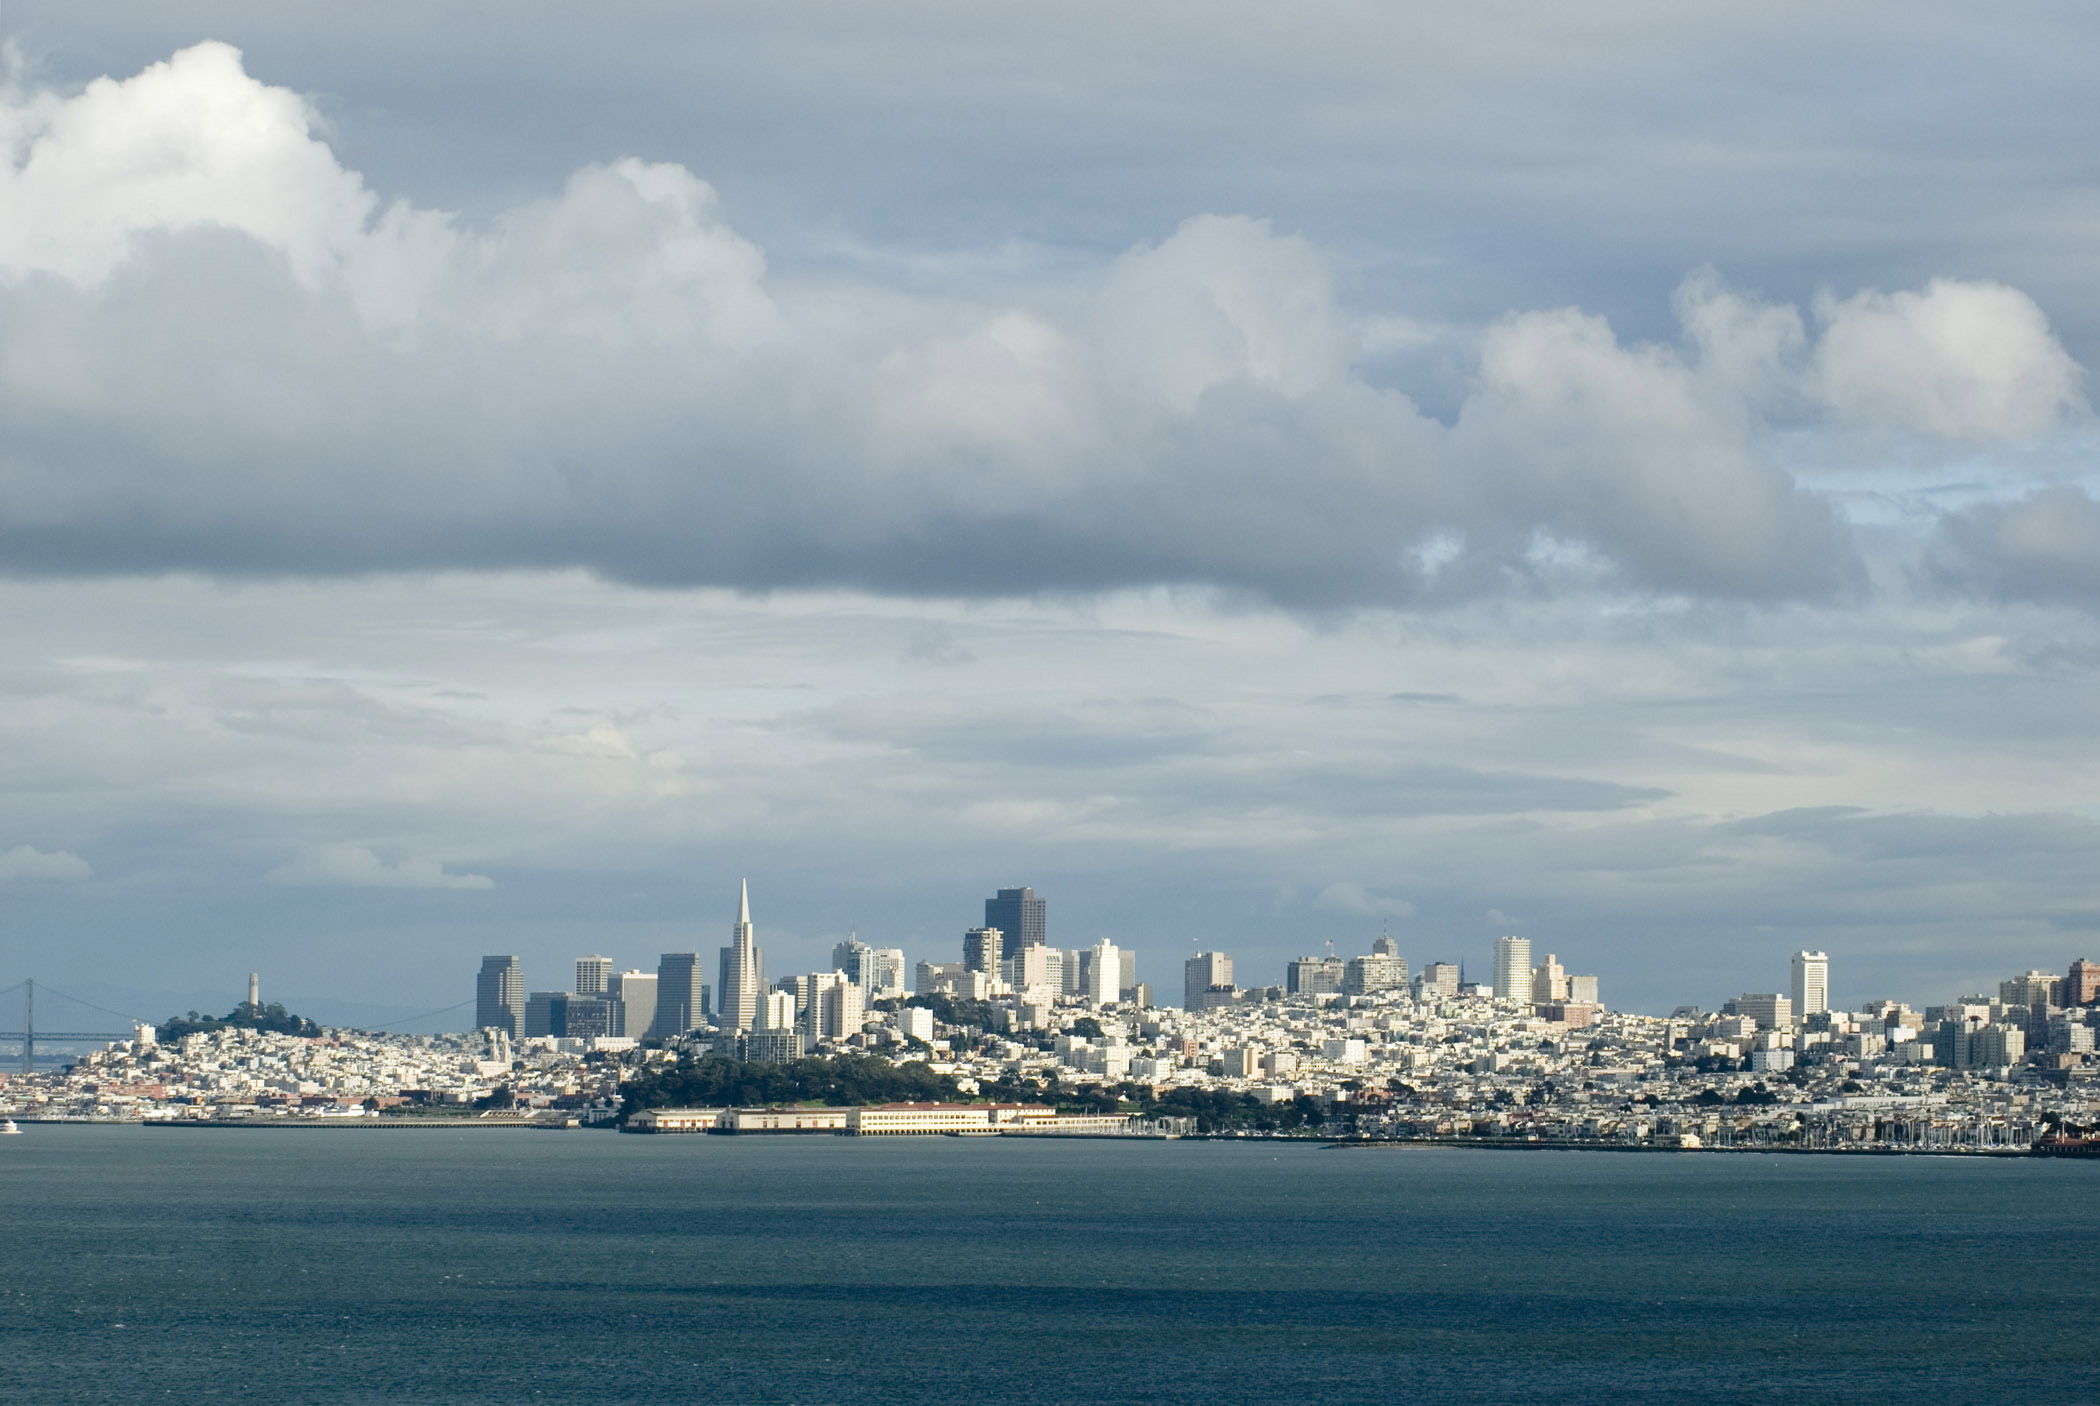 Beautiful San Francisco Skyline Extensive View. Captured on a Cloudy Day.